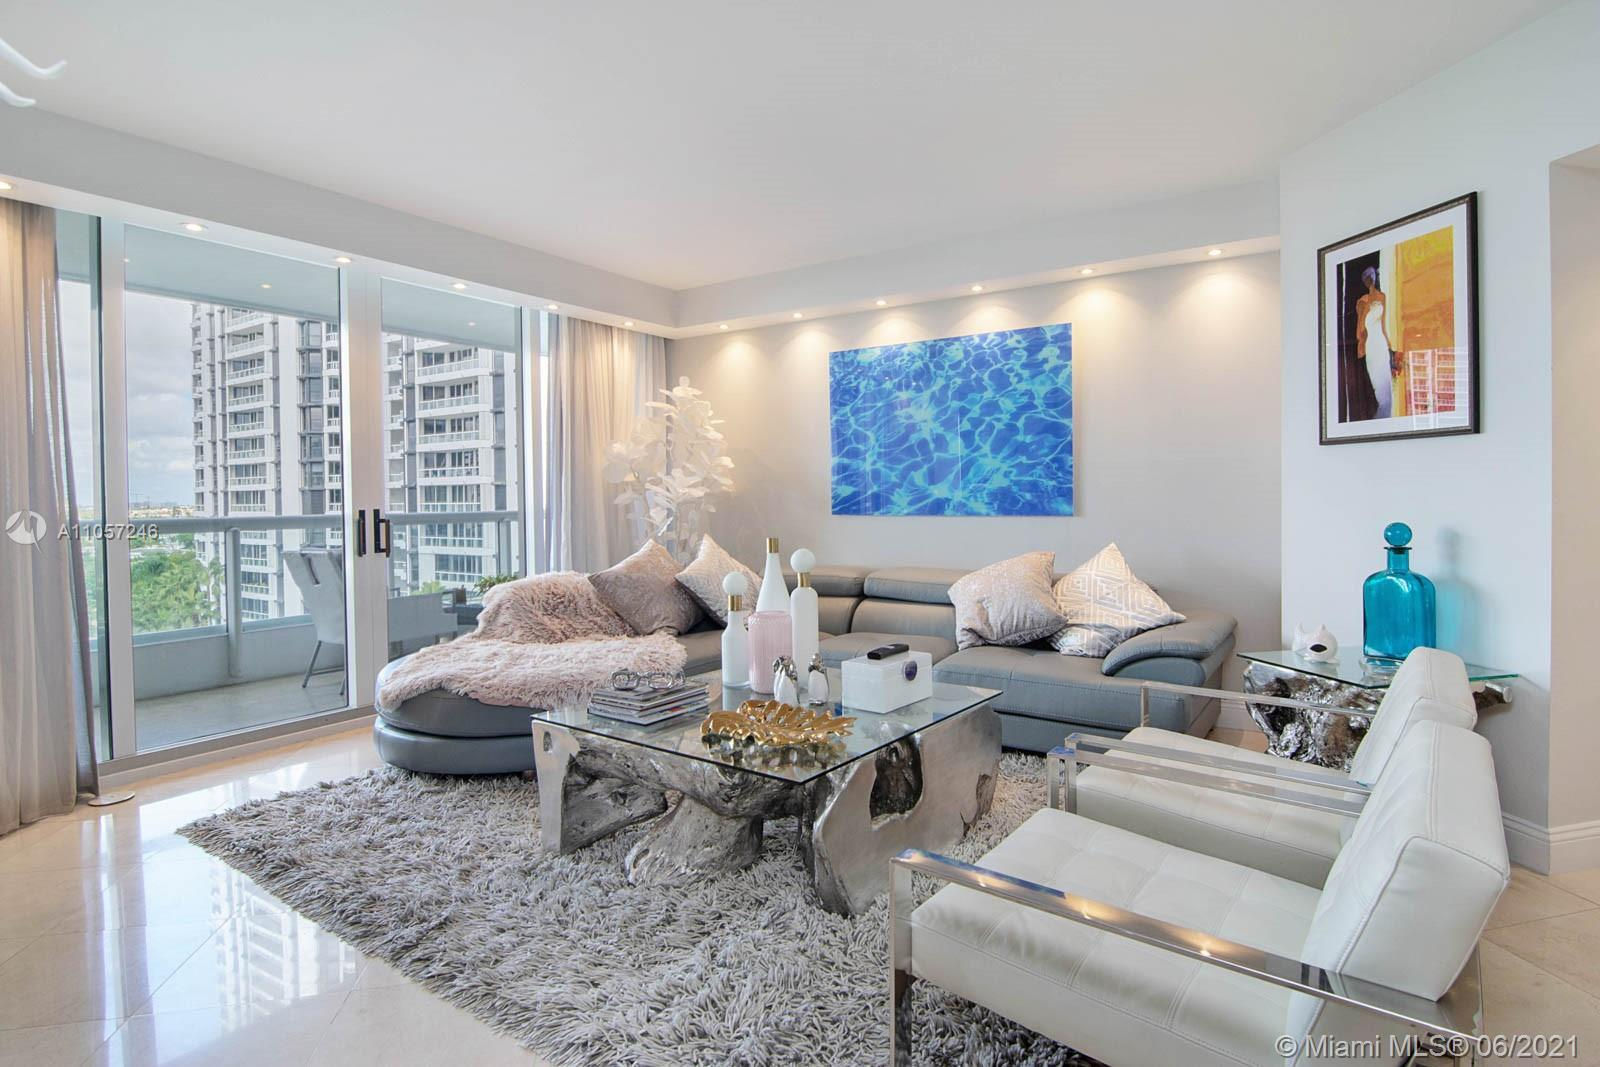 COMPLETELY RENOVATED 3 BED 2 BATH + DEN APARTMENT ( Maids Quarter). NEW KITCHEN, NEW BATHROOMS, MARB